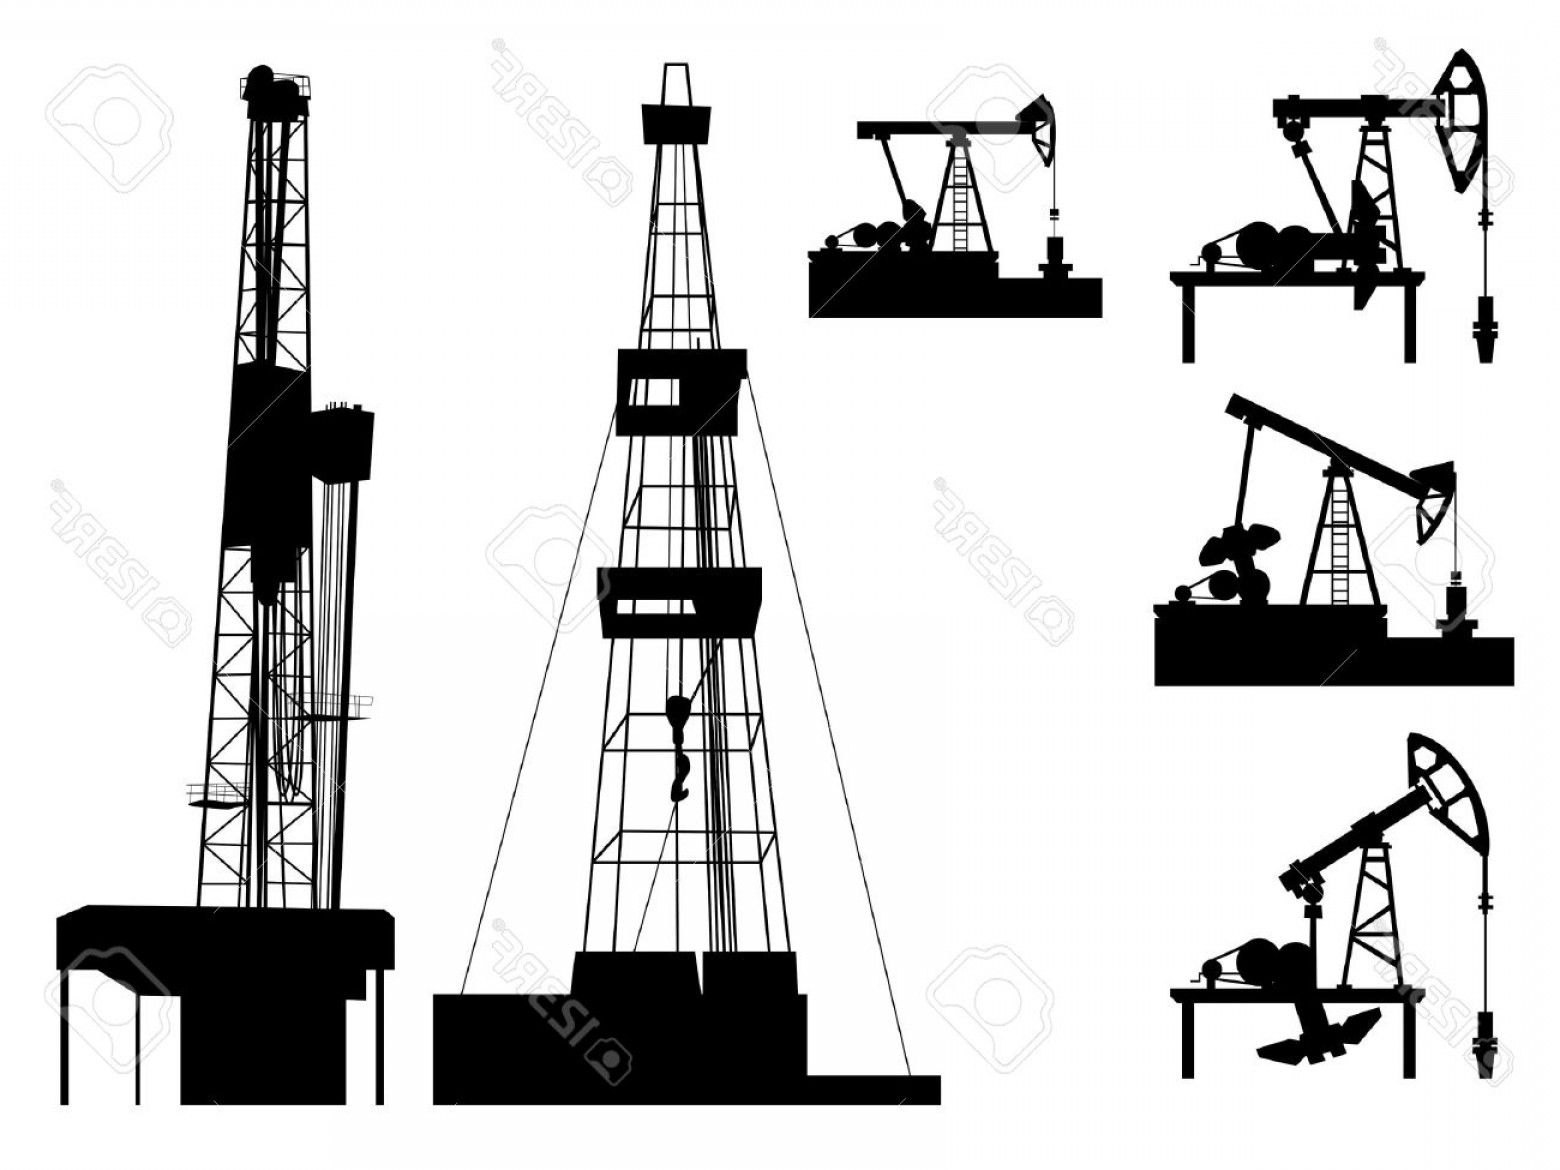 Oilfield Vector Crosses: Photosilhouettes Of Units For Oil Industry Oil Pump